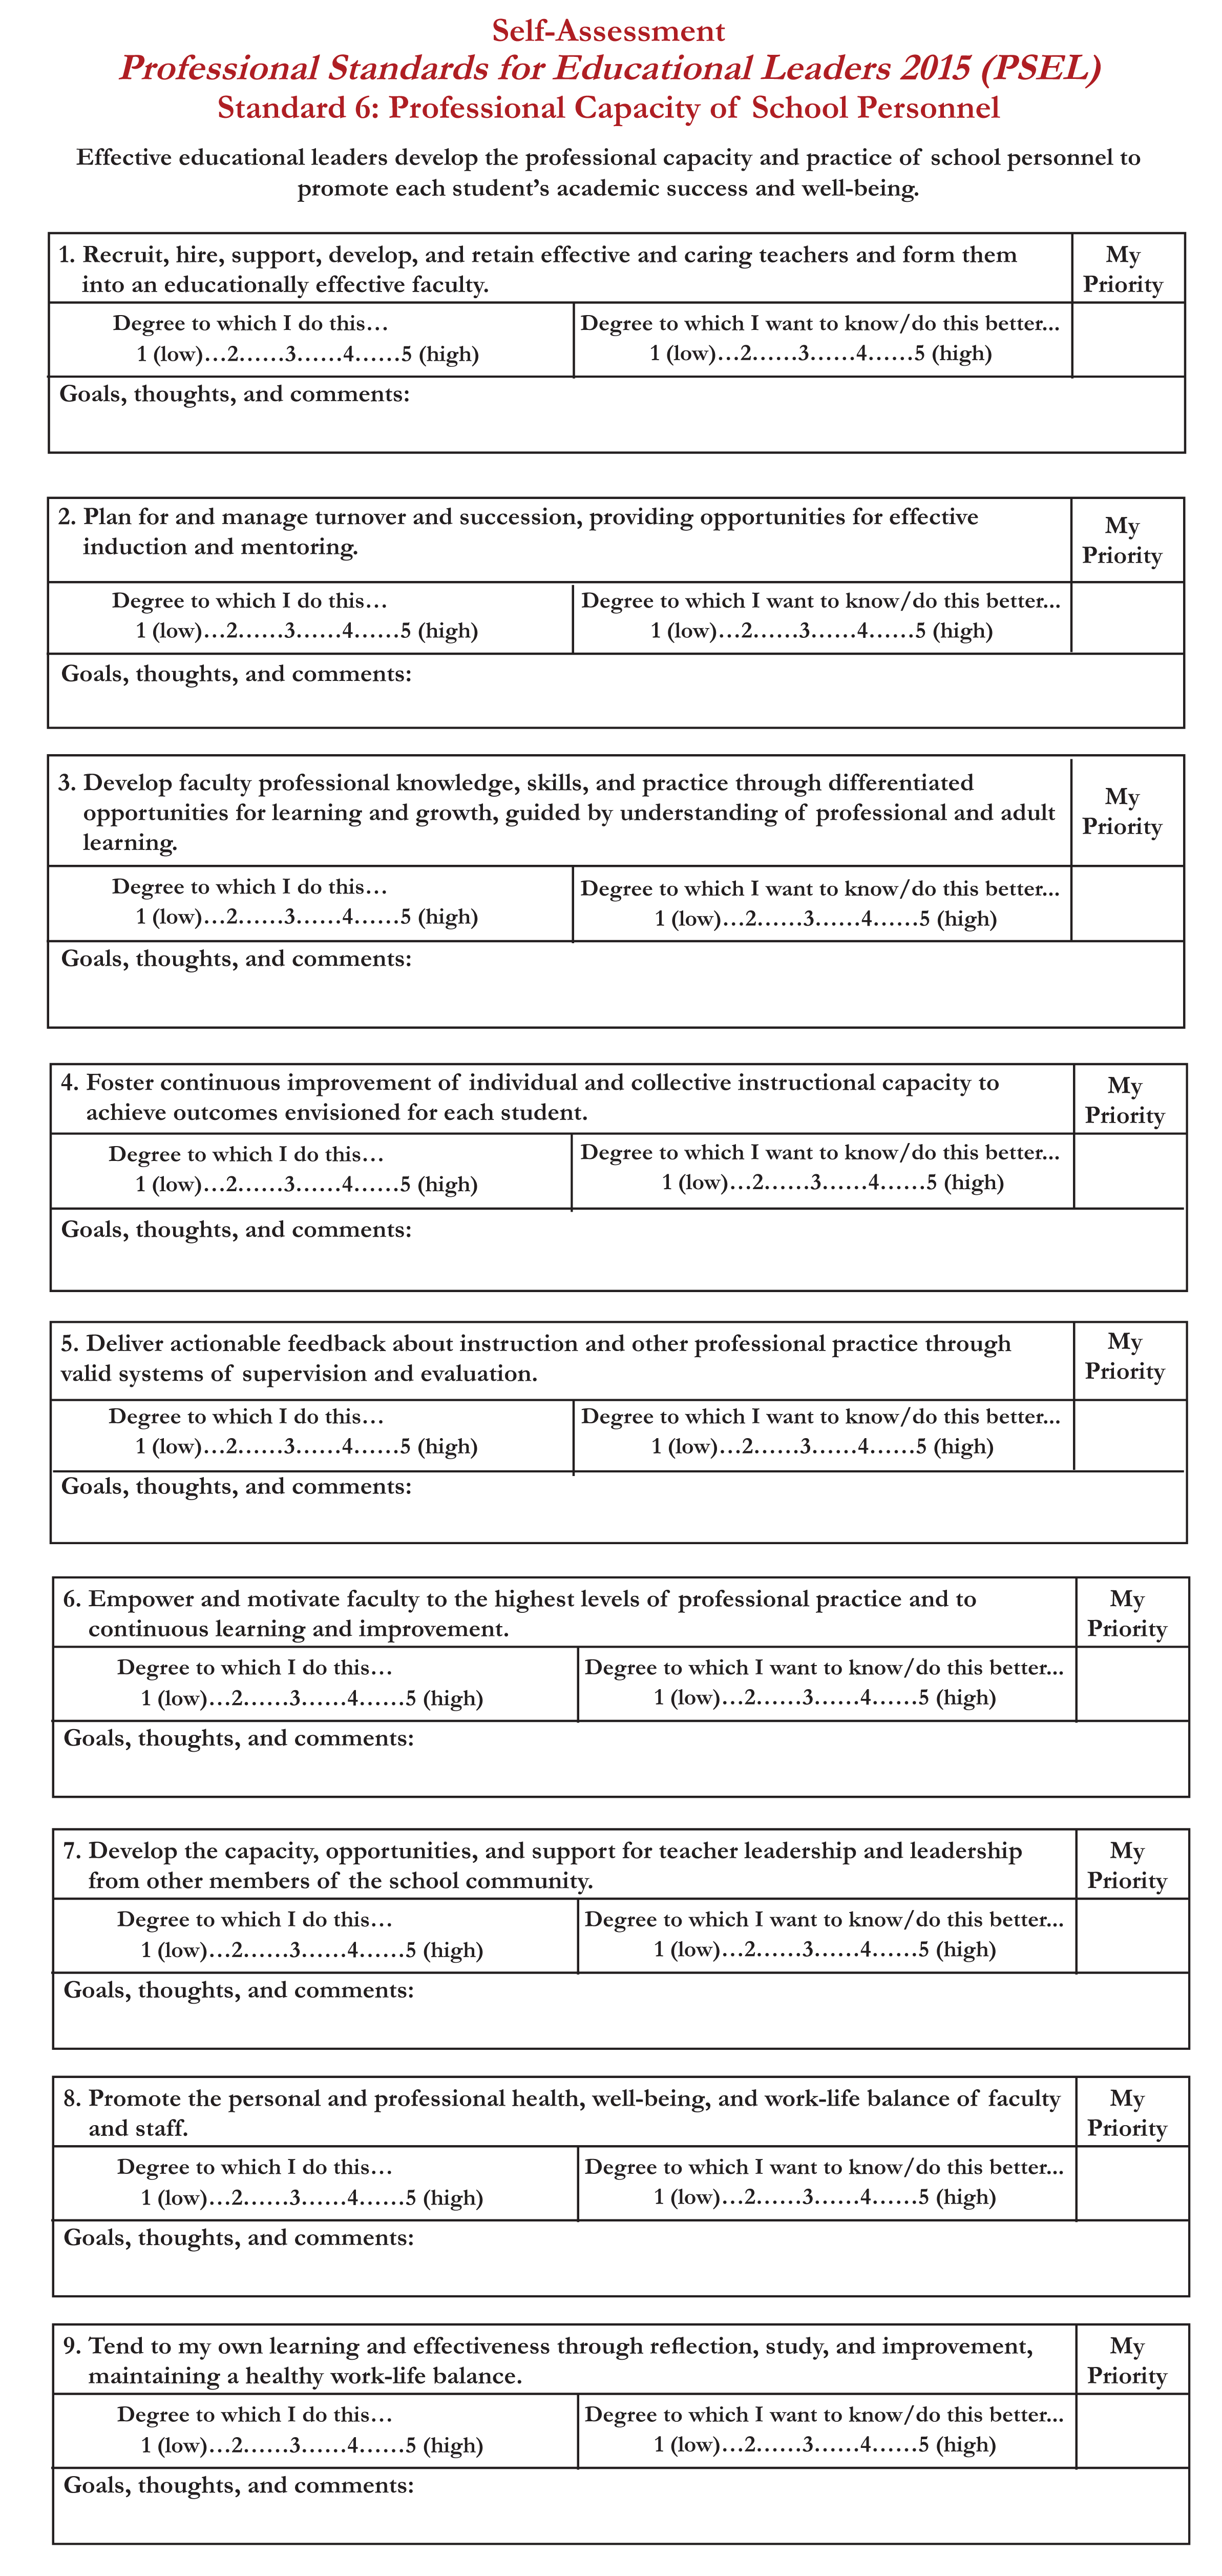 PSEL-Self-Assessment Standard 6